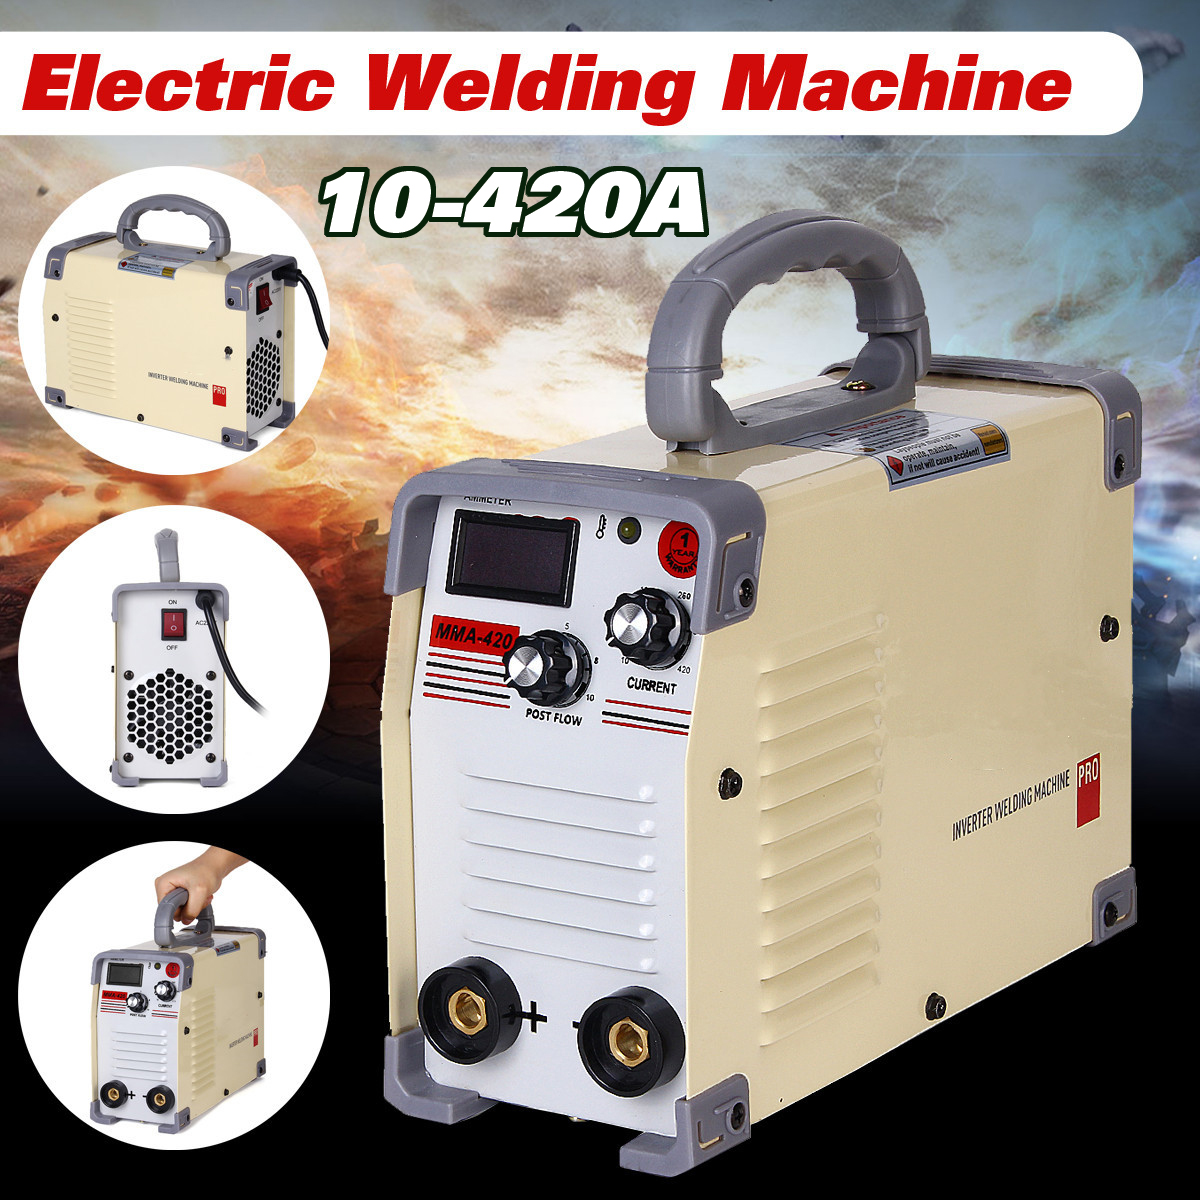 220V AC Welding Machine 10-420A DC Inverter Handheld Mini MMA IGBT Inverter Mini Electric ARC Welders Machine Tool High Quality